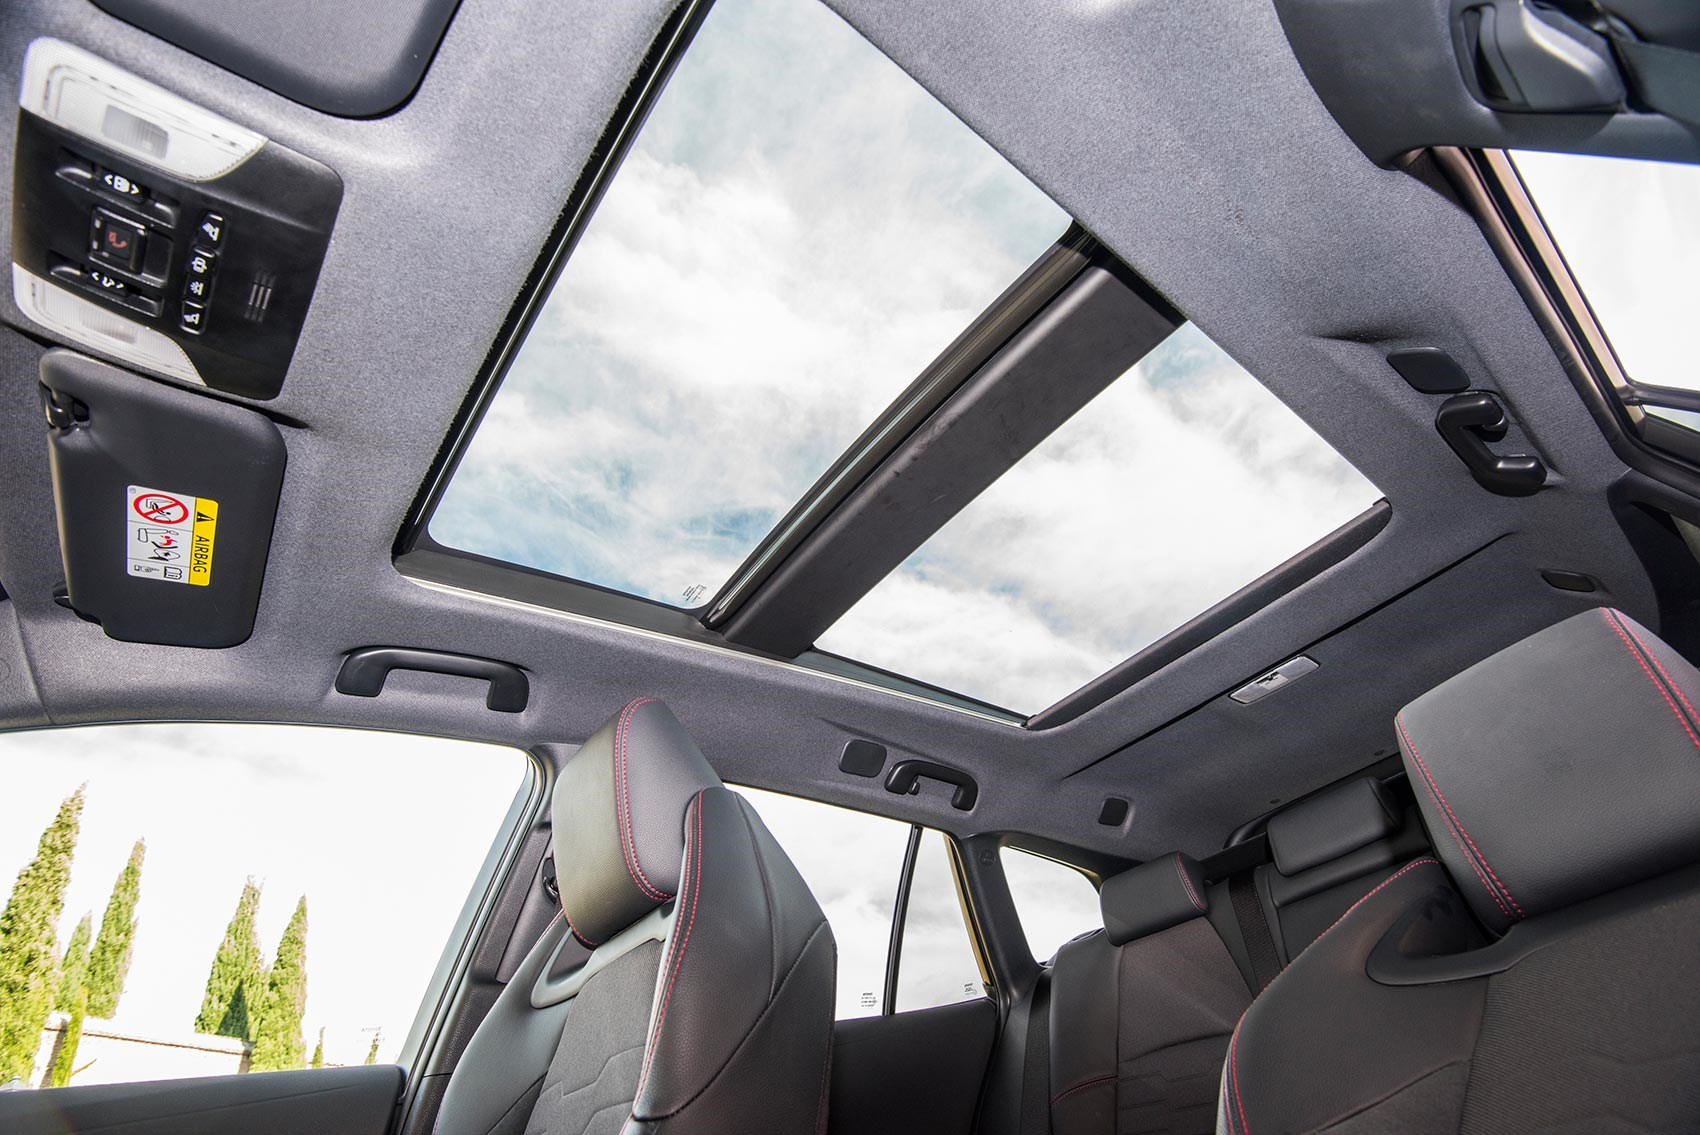 Toyota Corolla double sunroof